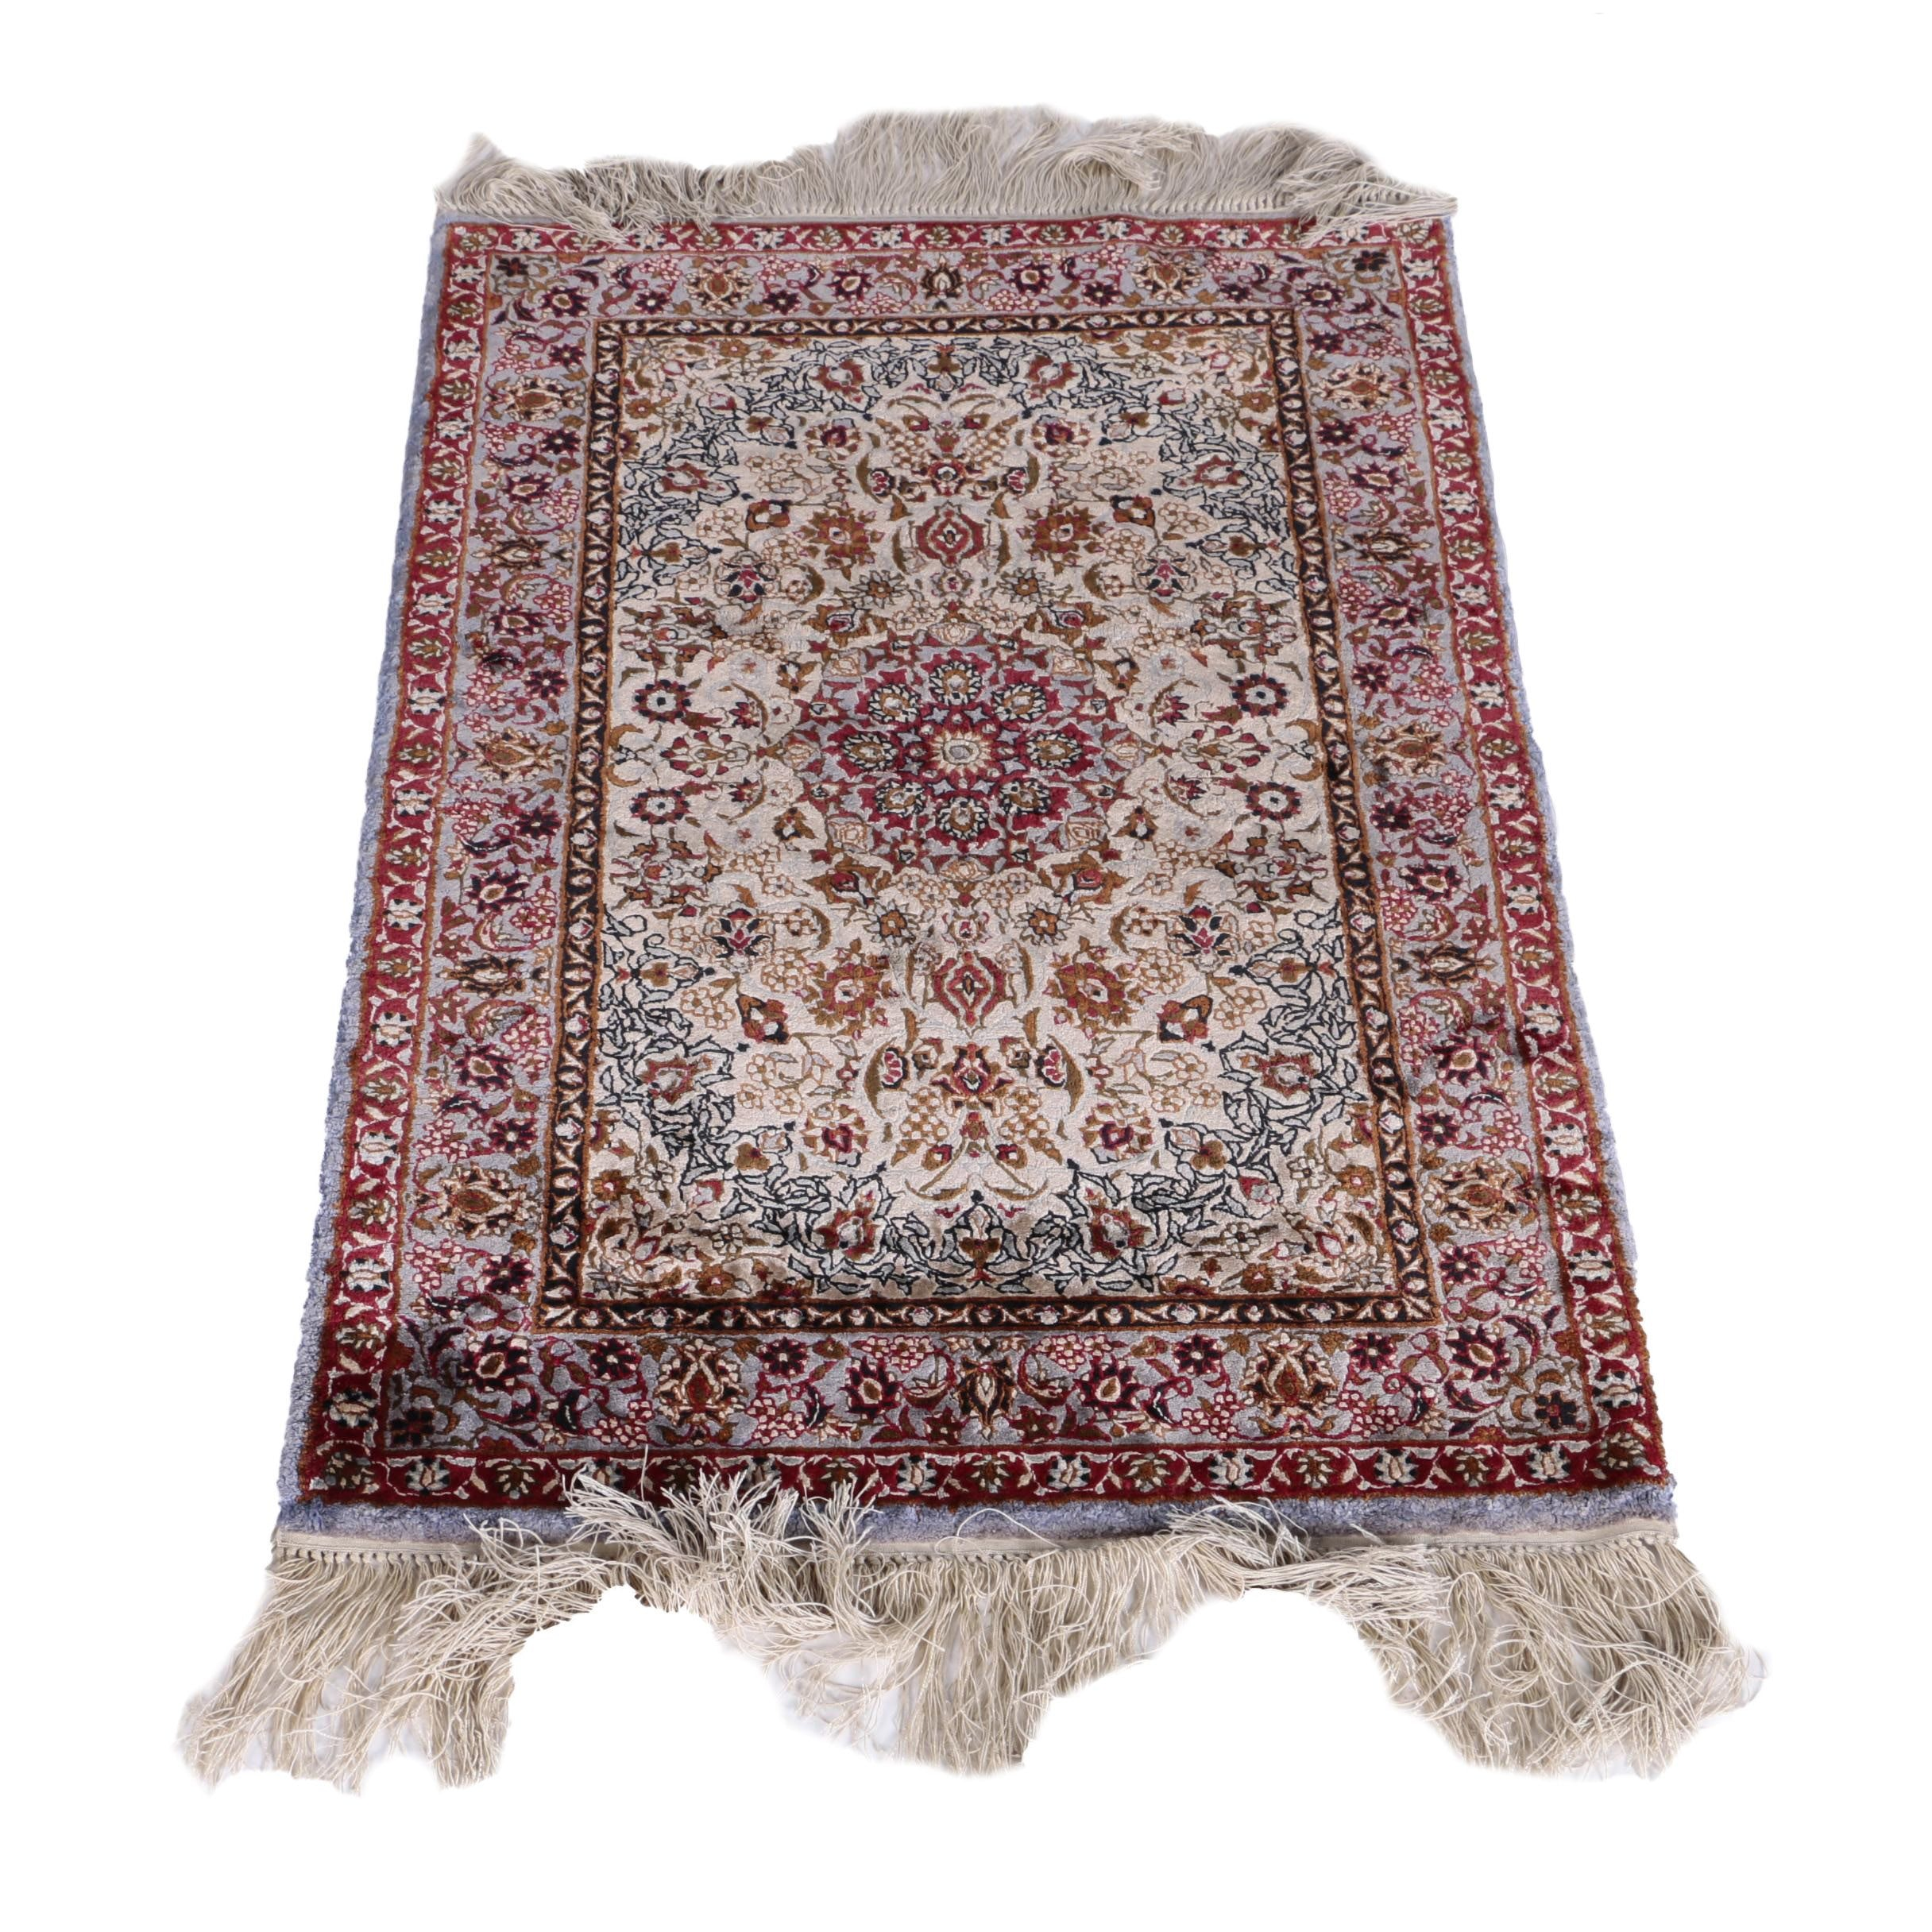 Hand-Knotted Sino-Persian Wool and Silk Accent Rug